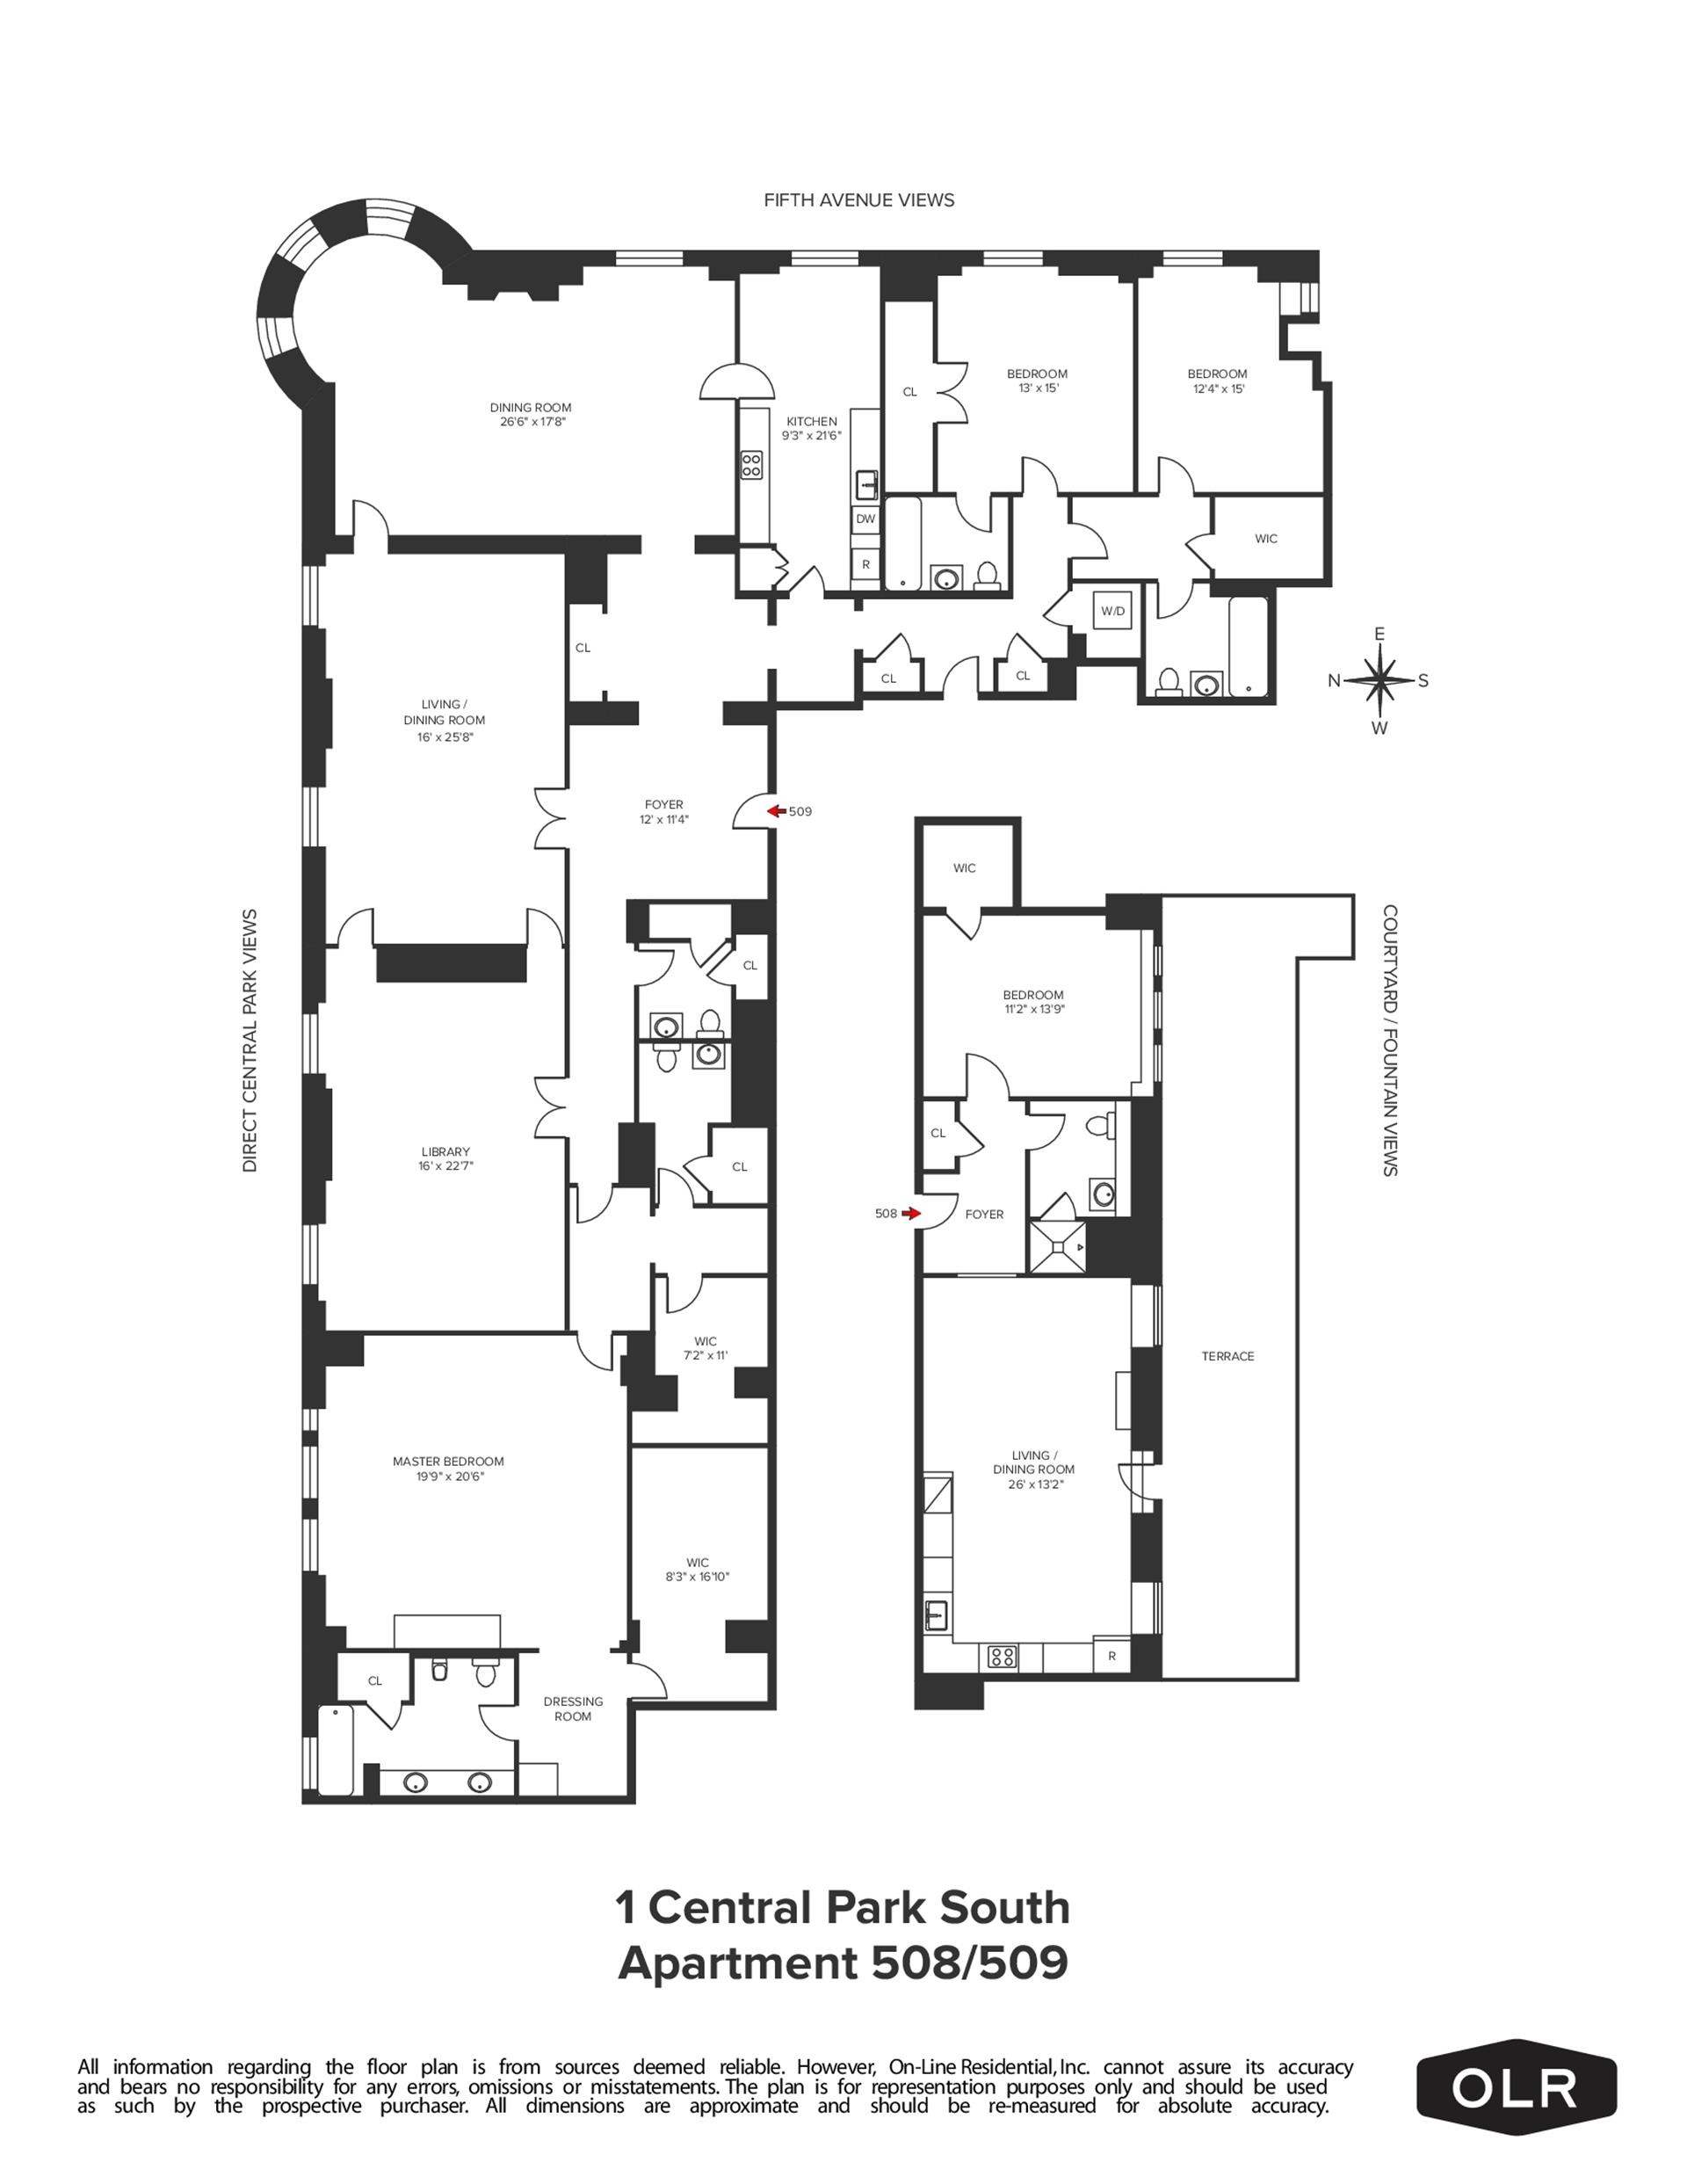 Floor plan of The Plaza Residences, 1 Central Park South, 508509 - Central Park South, New York